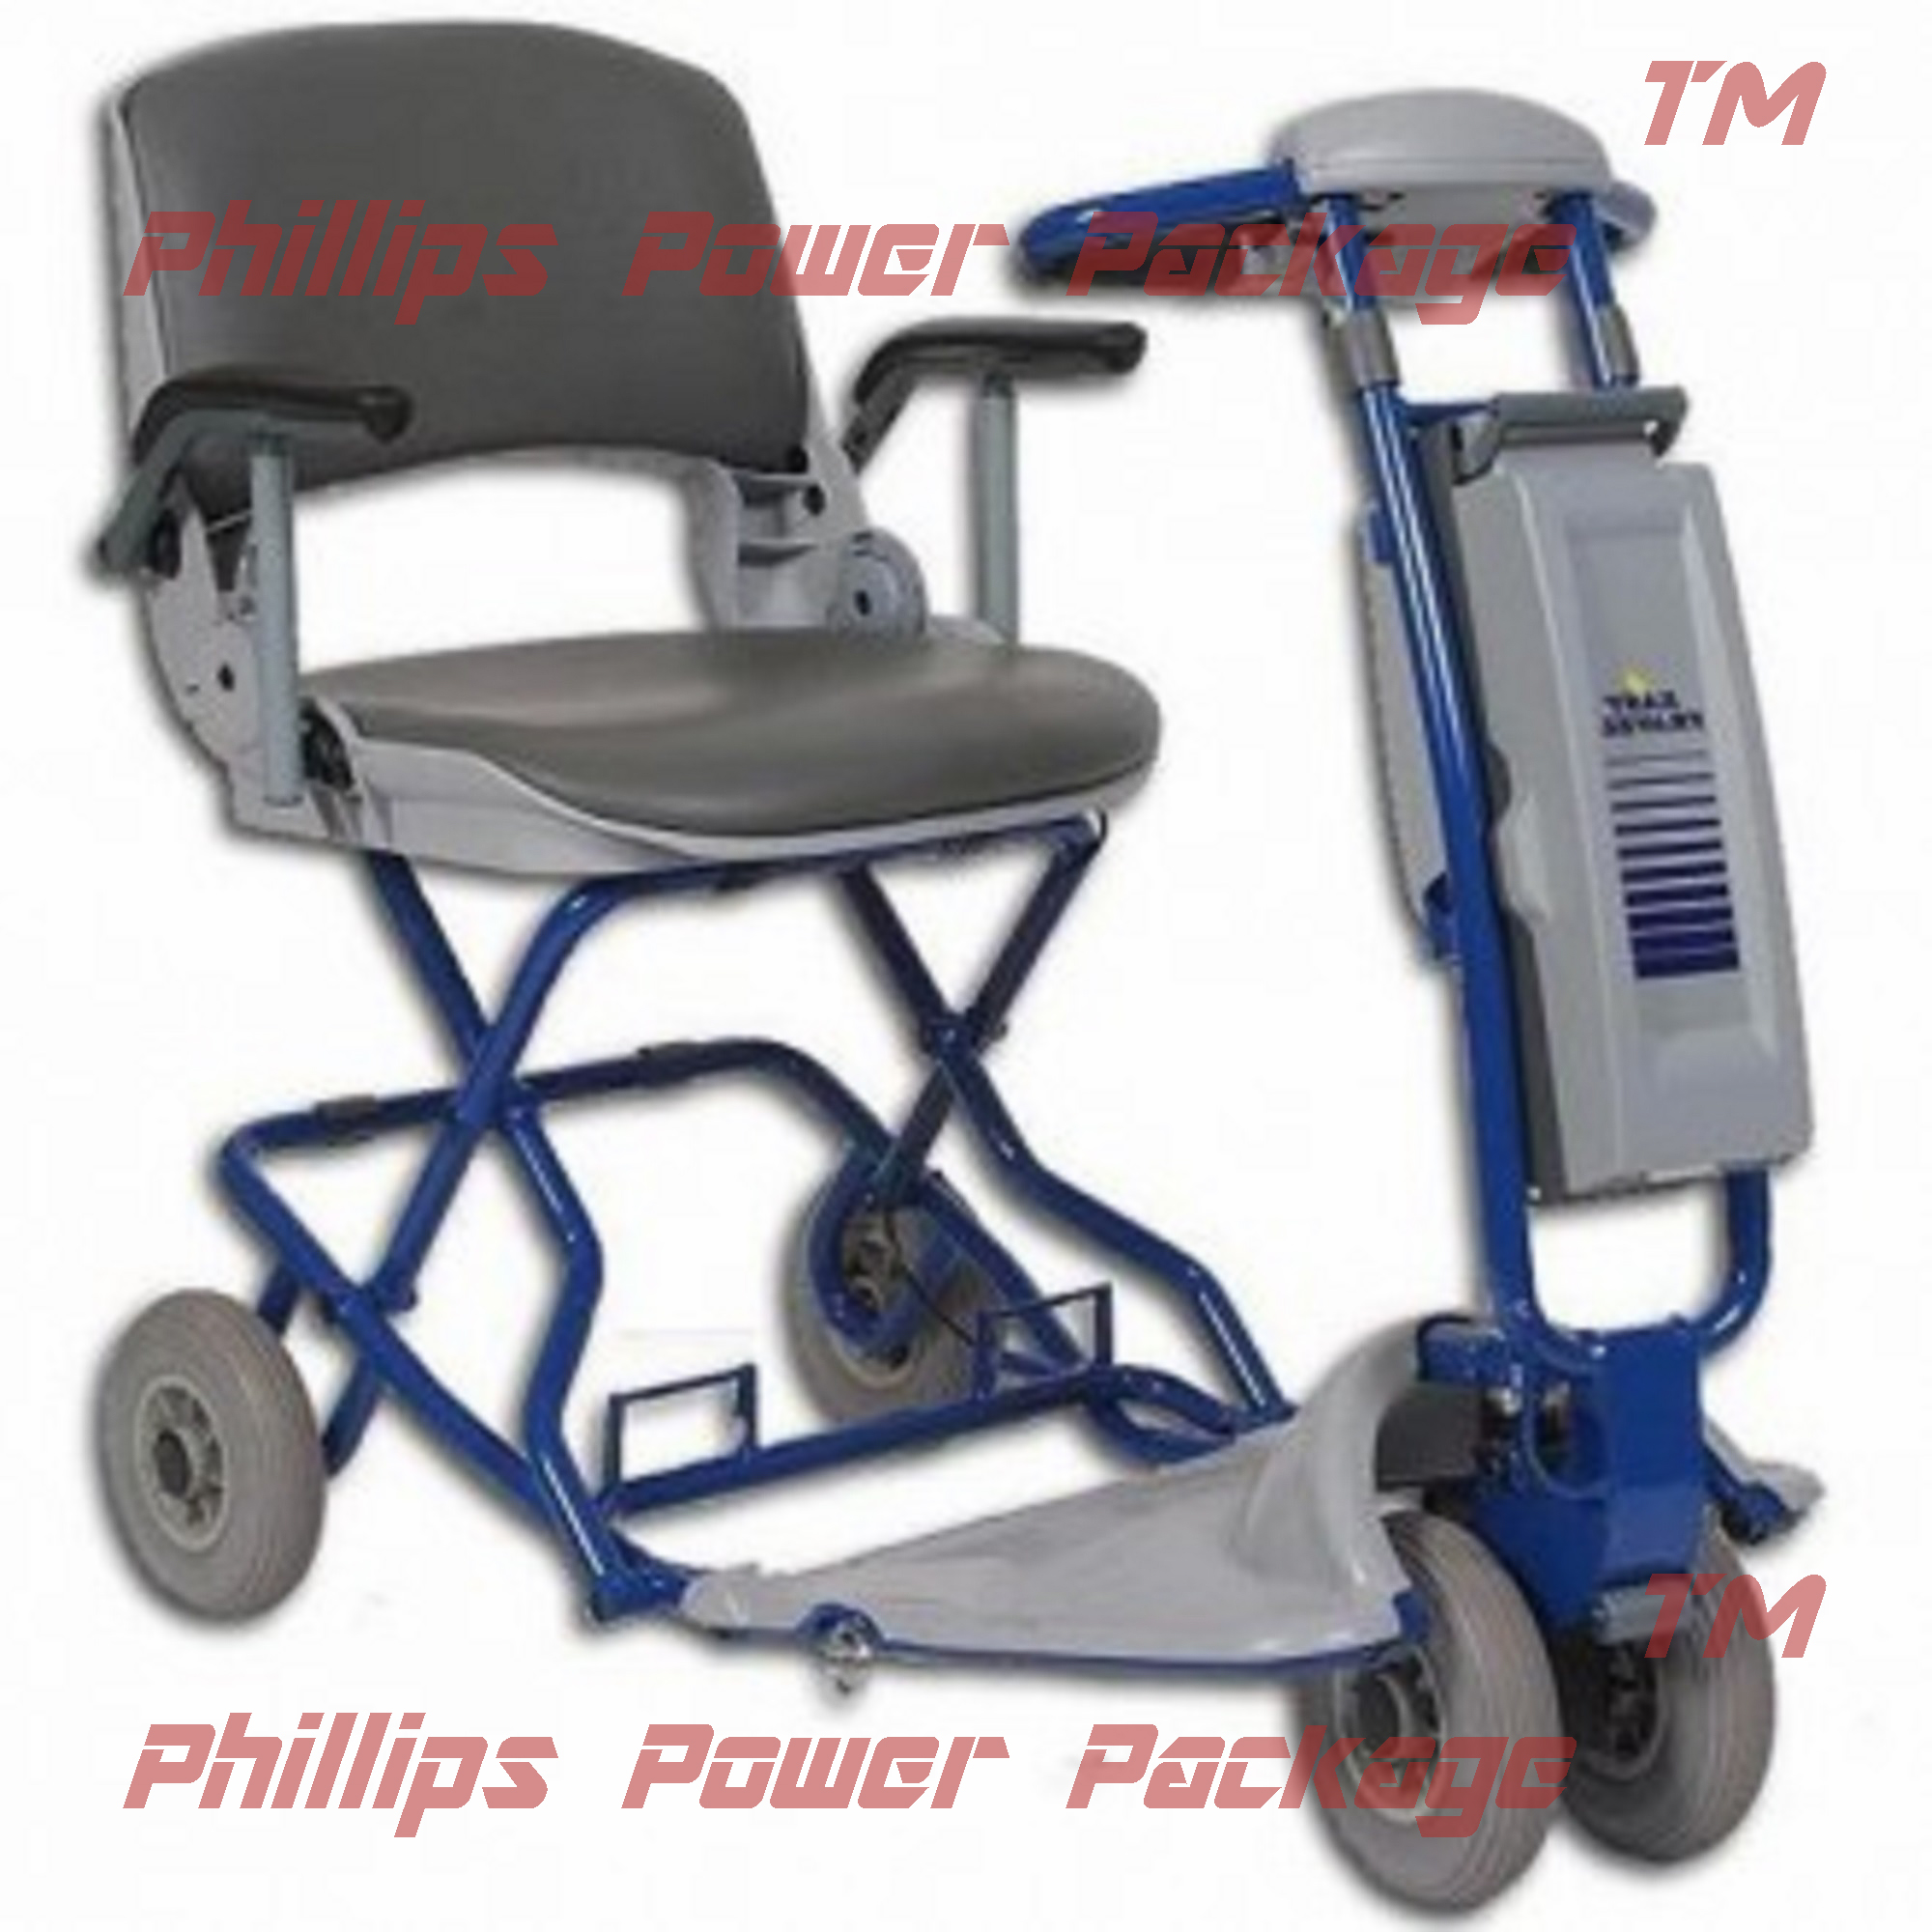 Tzora Classic Lexis Light Folding Lightweight Scooter 4-Wheel Blue PHILLIPS POWER PACKAGE TM $500 VALUE by